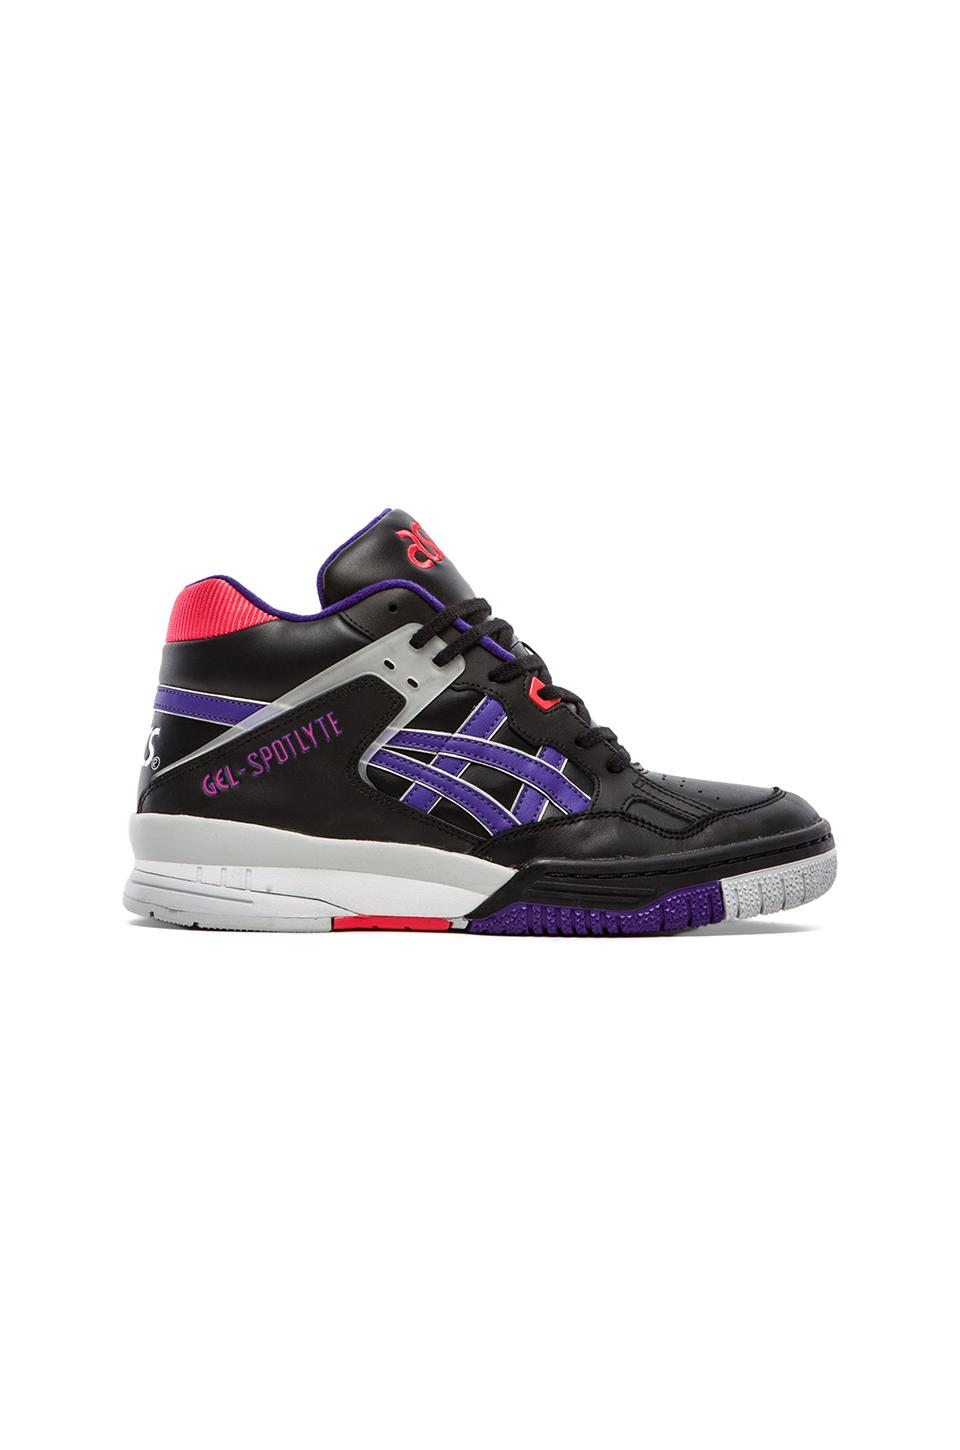 Asics Re-Issue Gel Spotlyte in Black &  Purple